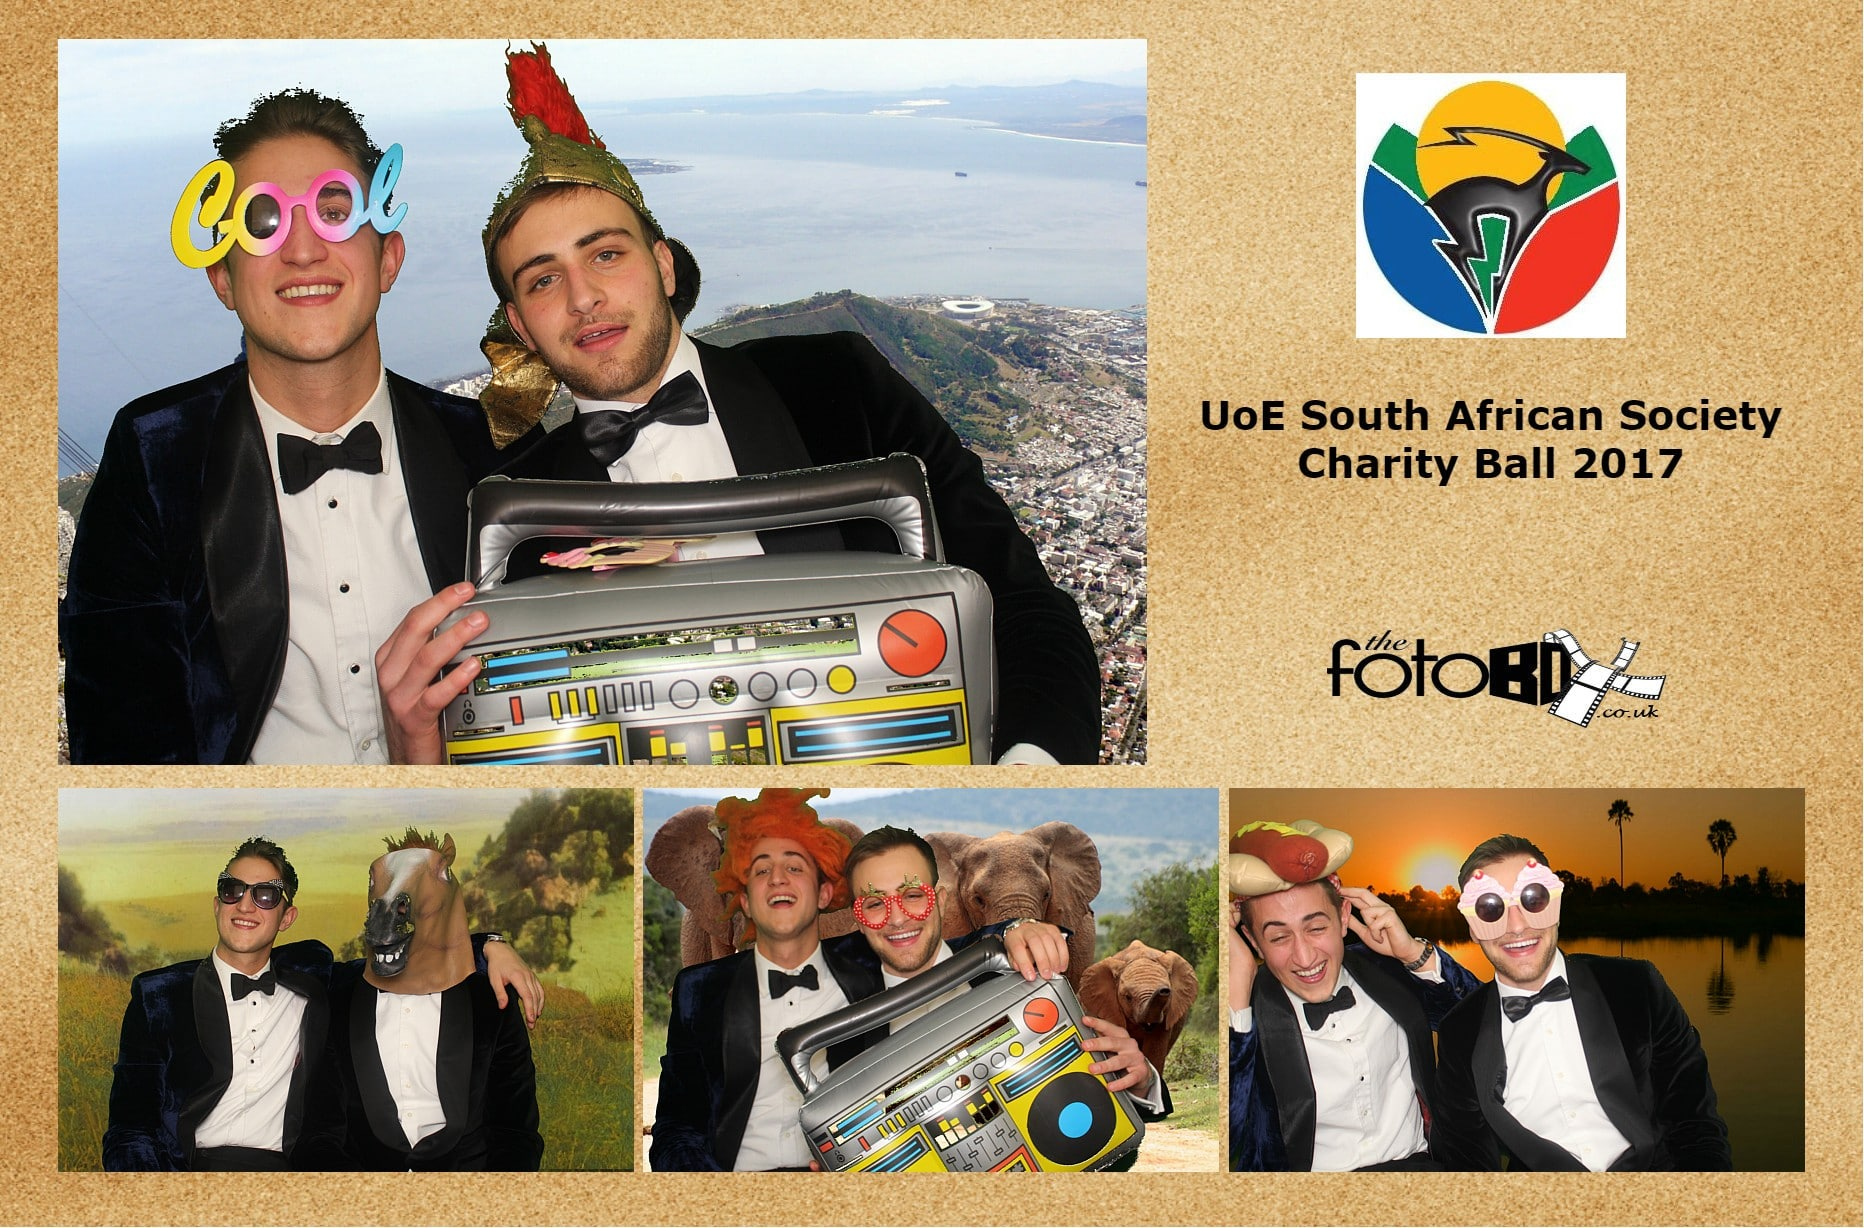 Louis, Events Organiser, University of Edinburgh South African Society